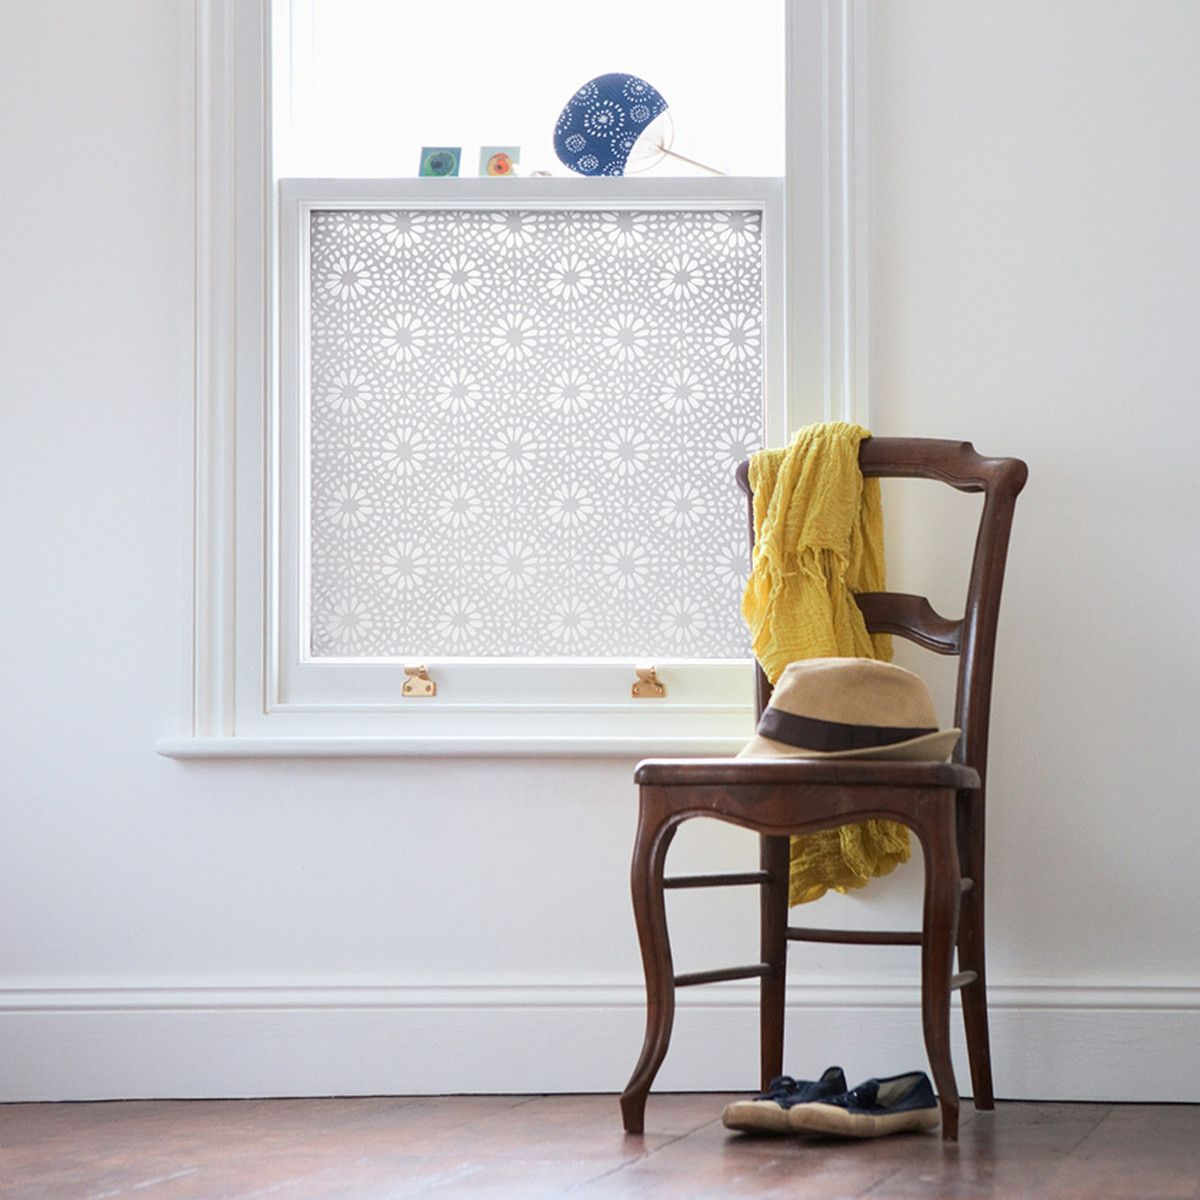 Lace Window Film - great for privacy instead of curtains - while ...